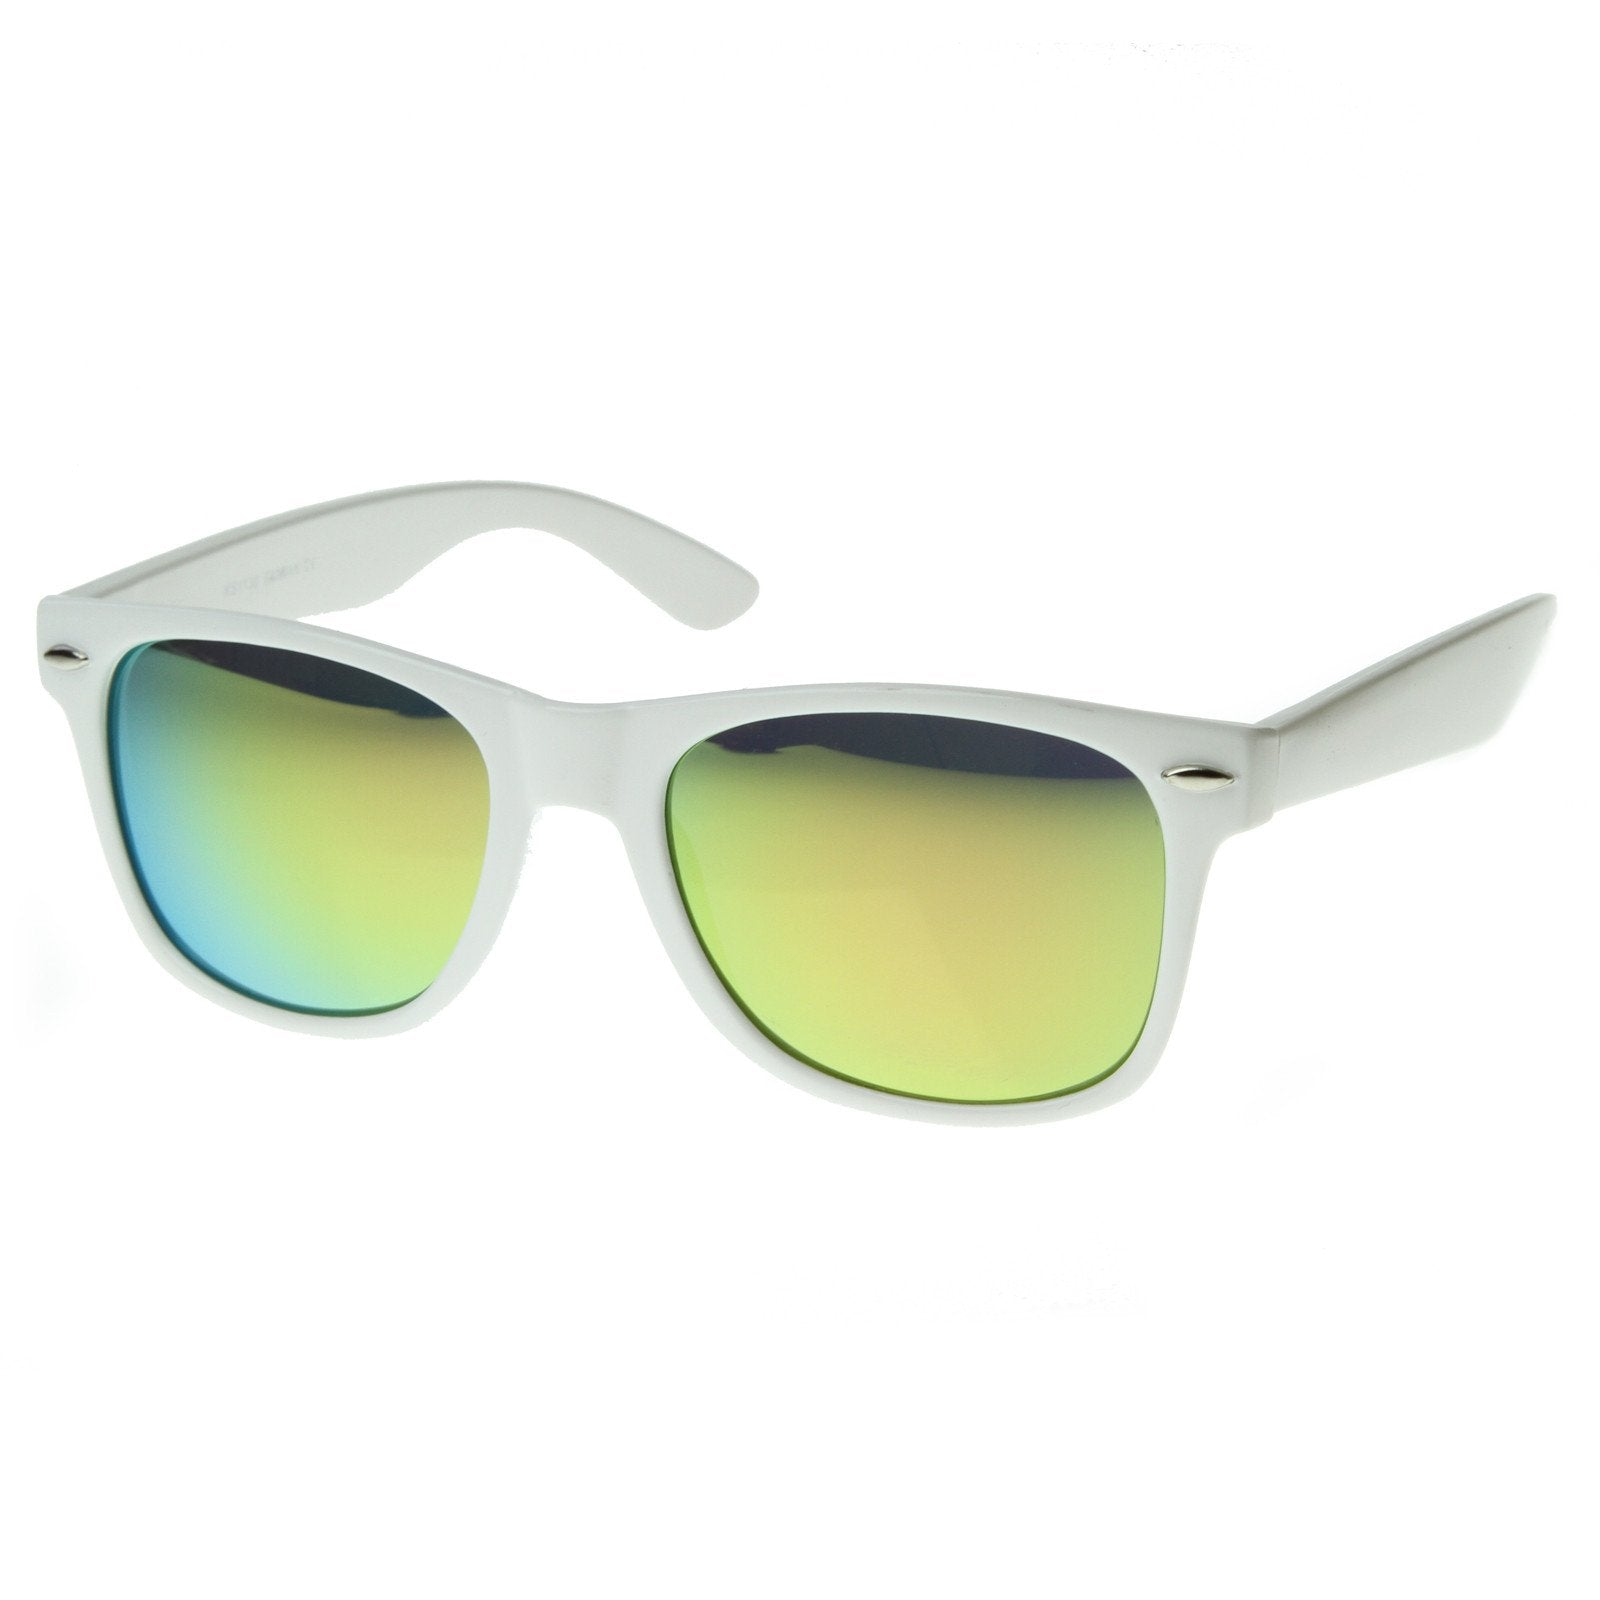 e53c200f9b Retro Horned Rime Sunglasses With Flash Mirror Lenses - zeroUV